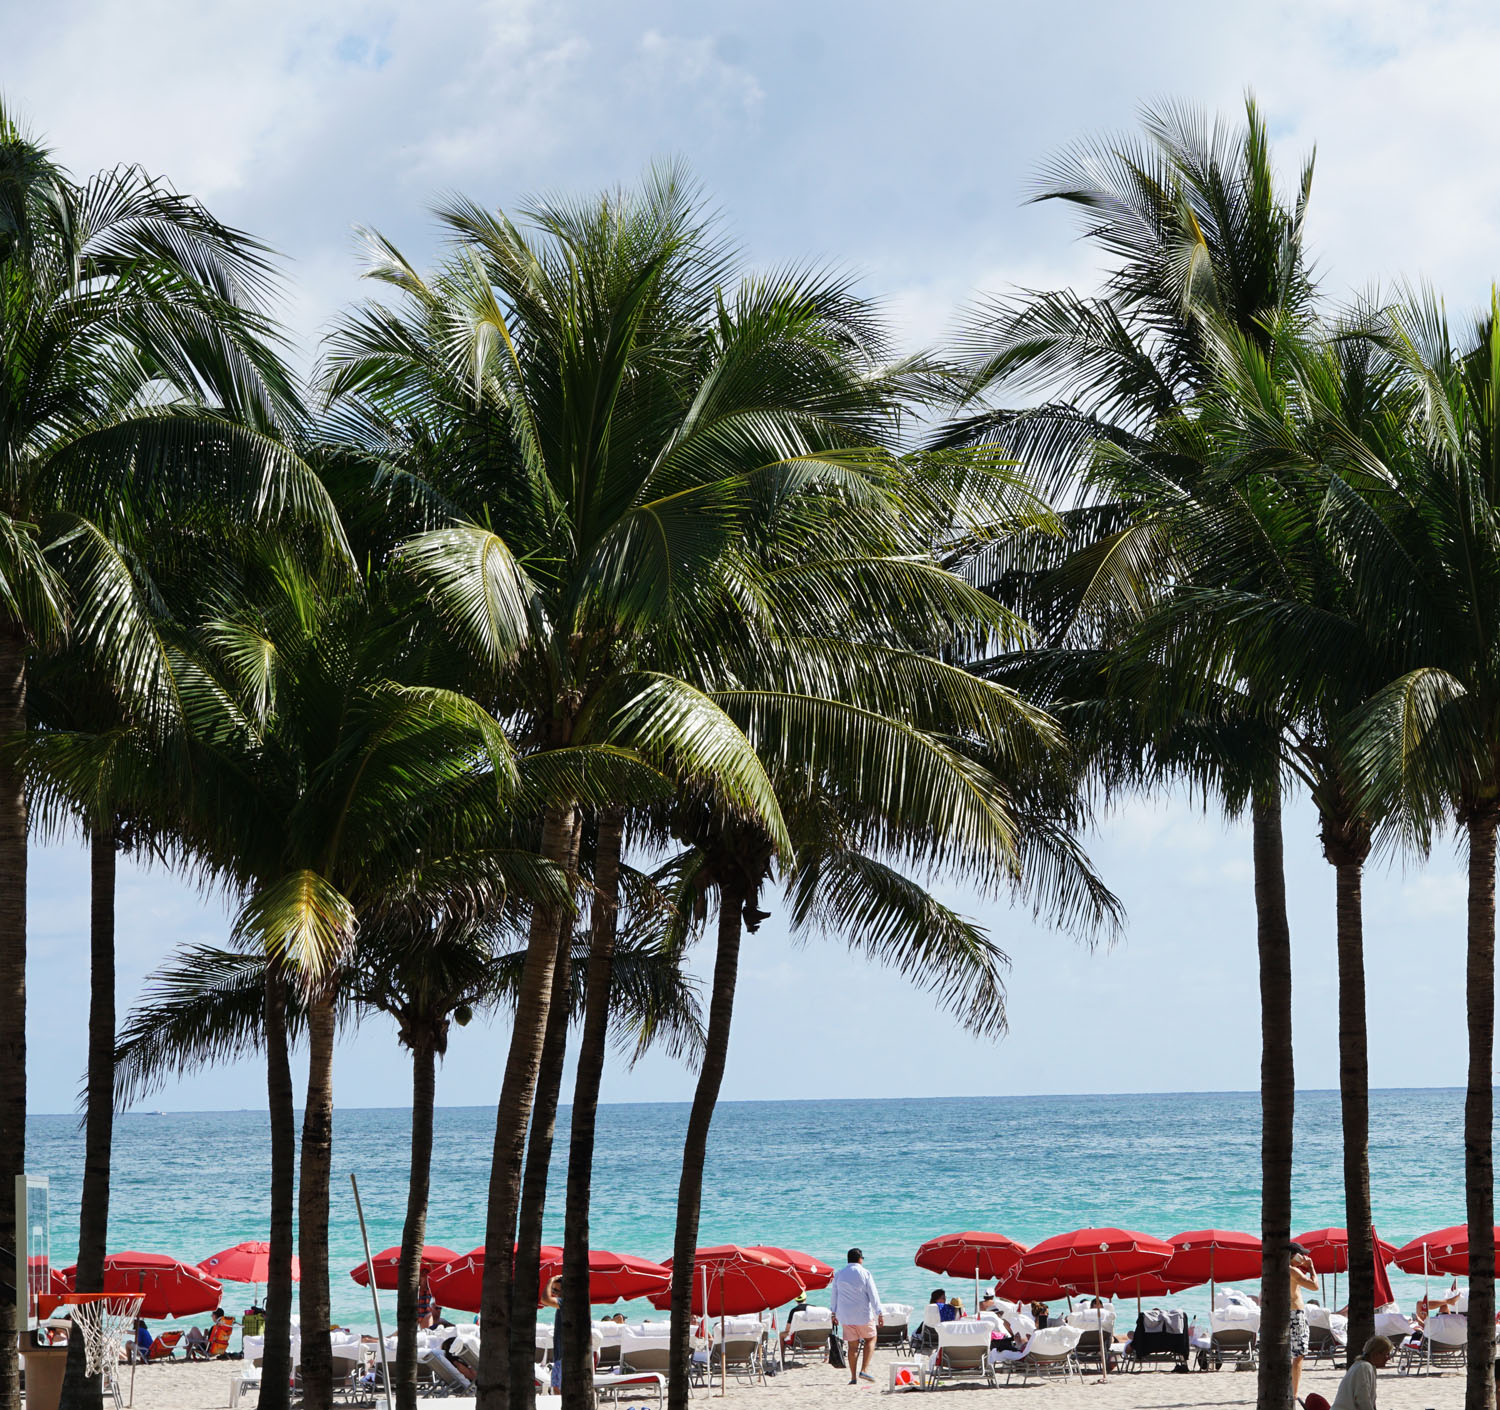 acqualina-resort-spa-beach-view